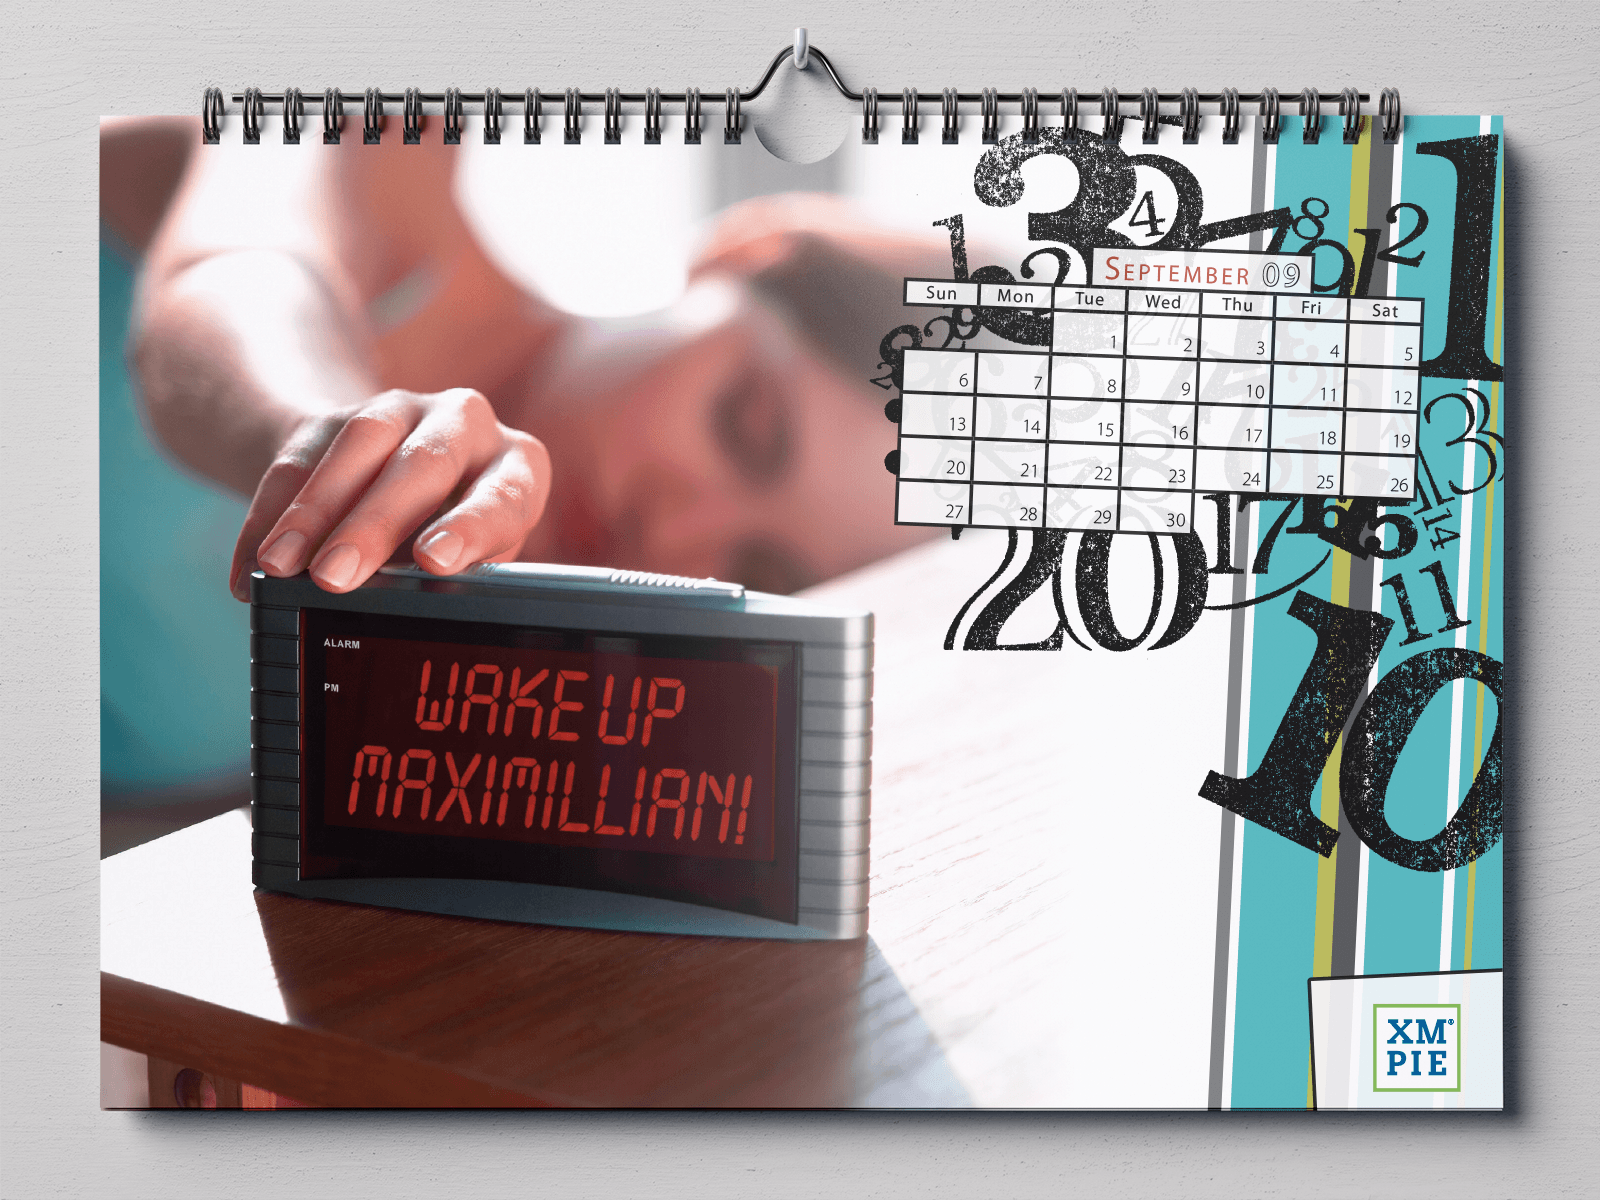 https://bigeyes.co.il/wp-content/uploads/2019/07/college-calendar-10.png